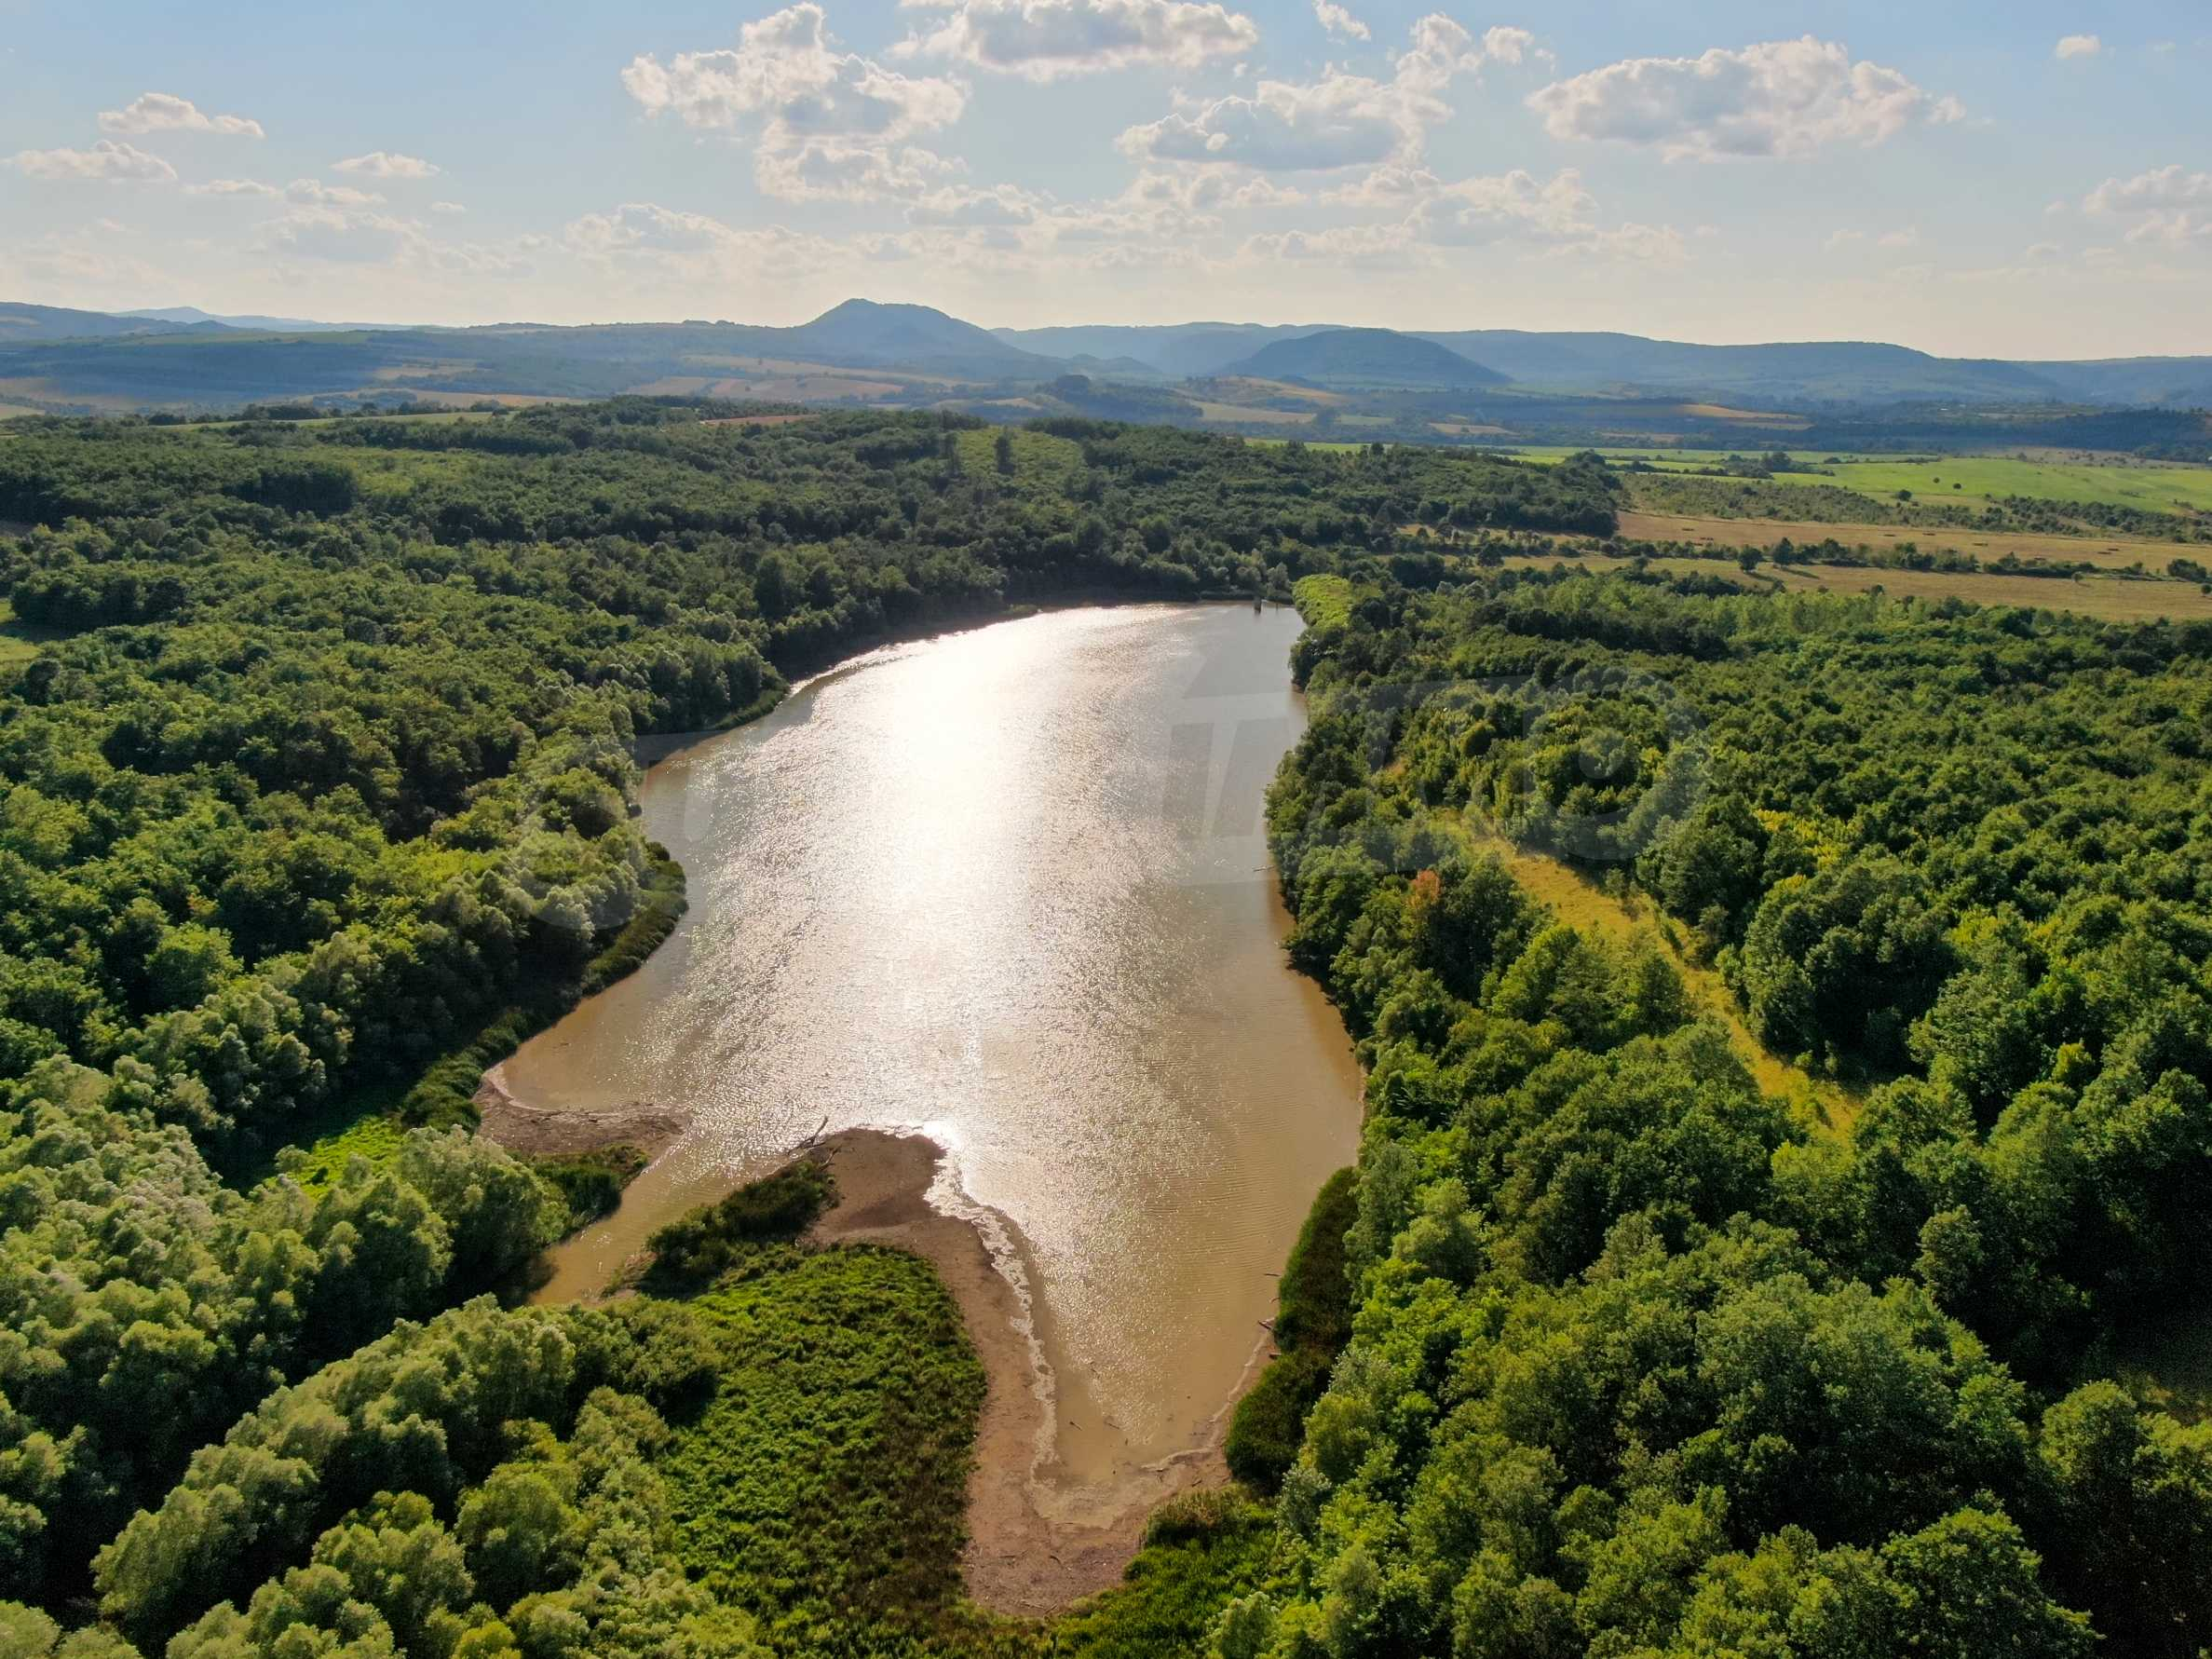 Private dam with land near Veliko Tarnovo